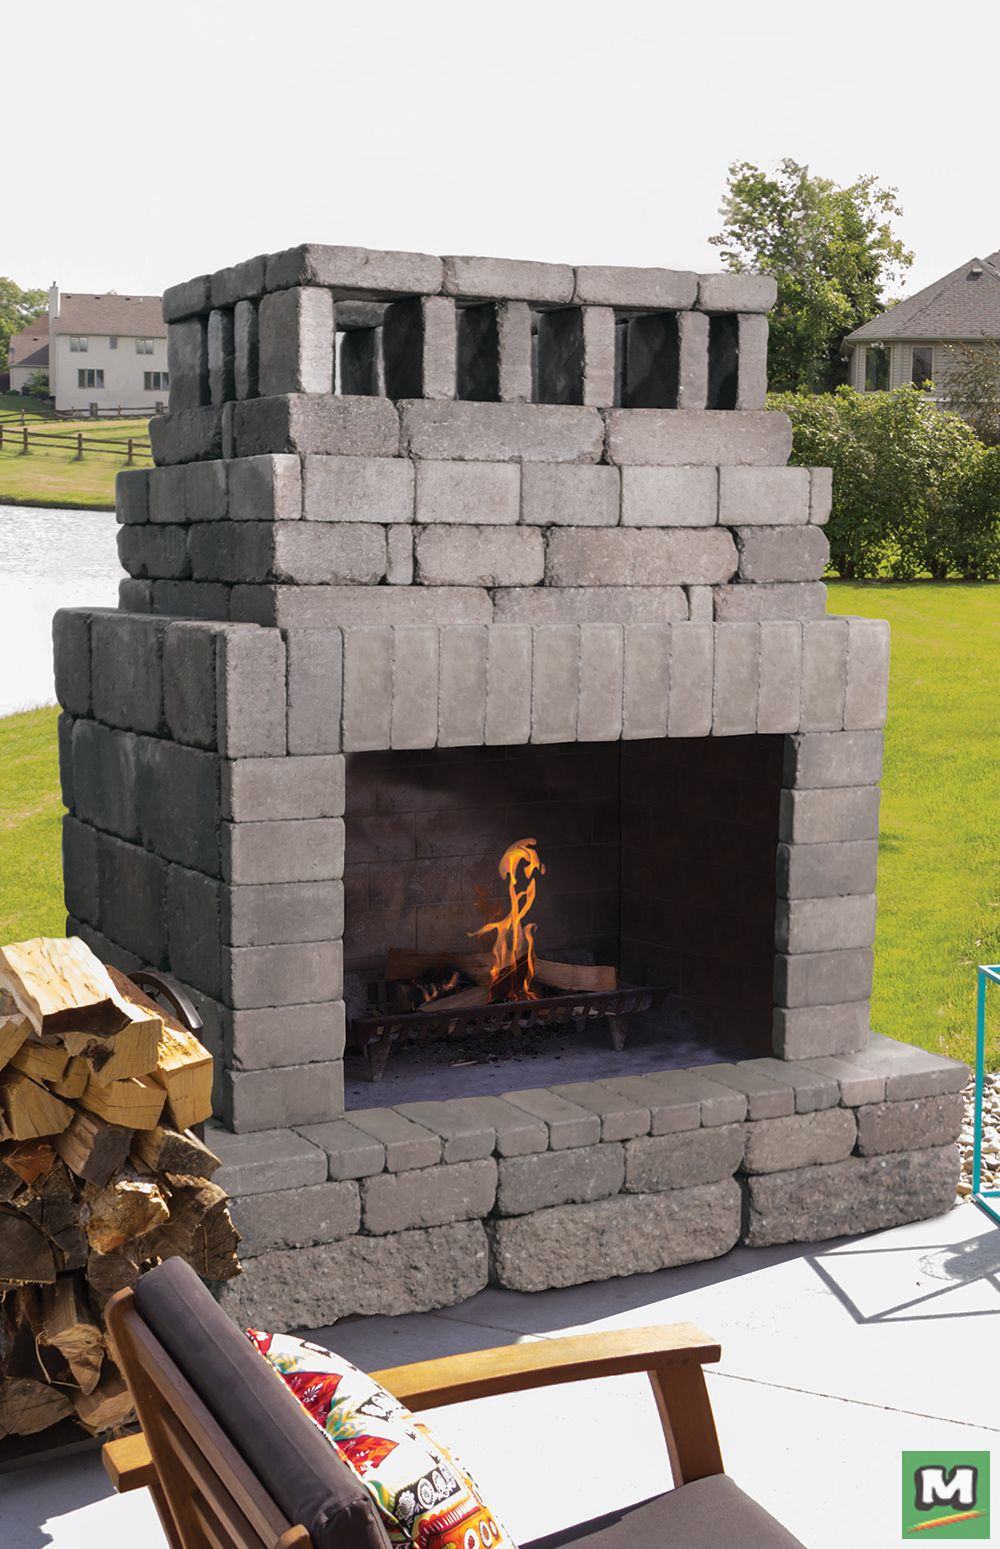 This Rhode Island Outdoor Fireplace May Be Small In Size But It Provides Plenty Of Heat Build O Outdoor Fireplace Plans Building A Deck Outdoor Patio Designs